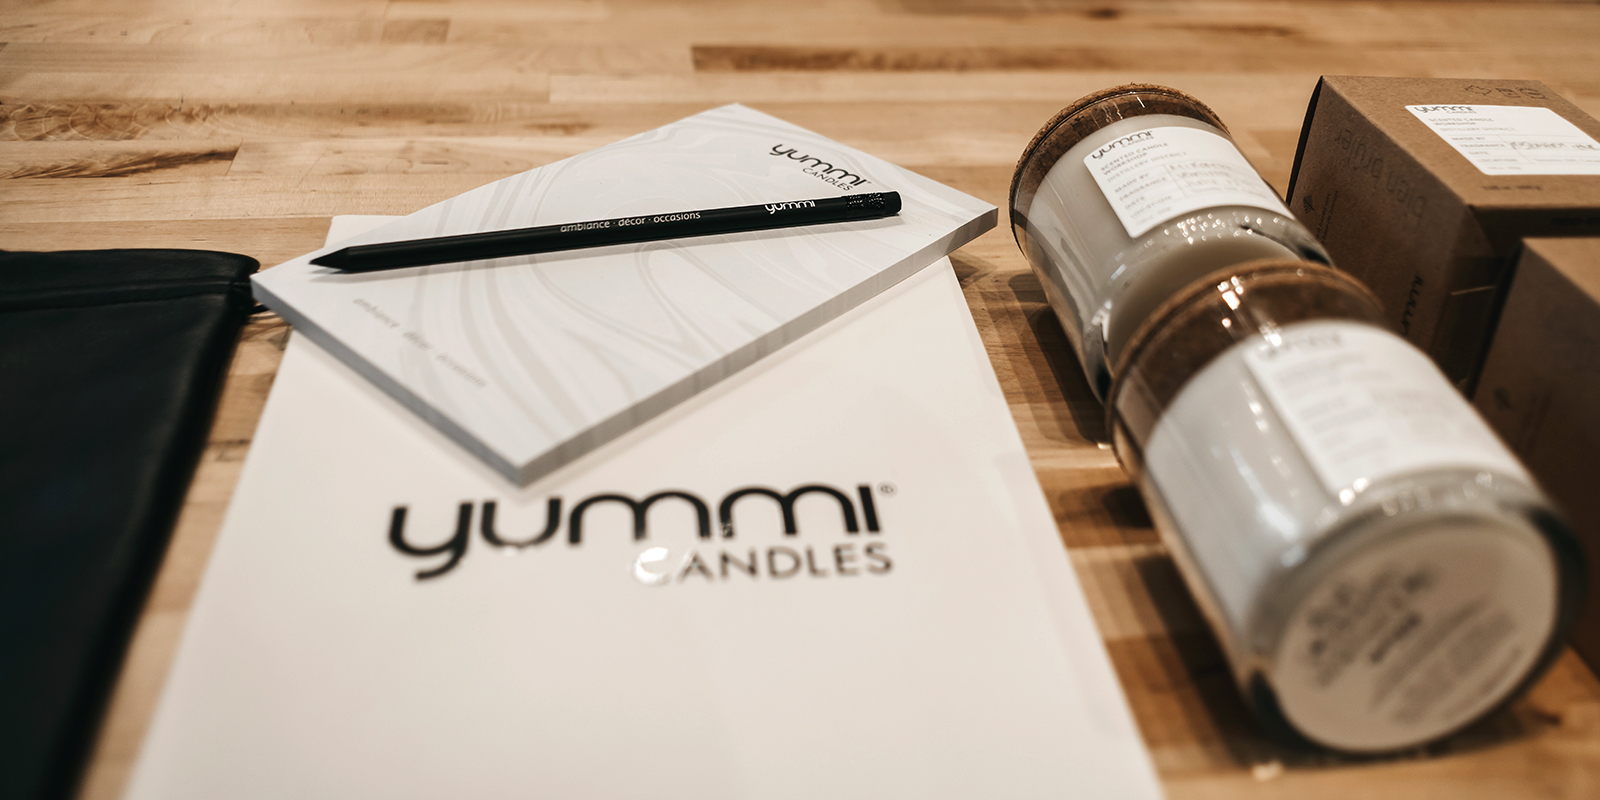 Yummi Candles Brand Collateral